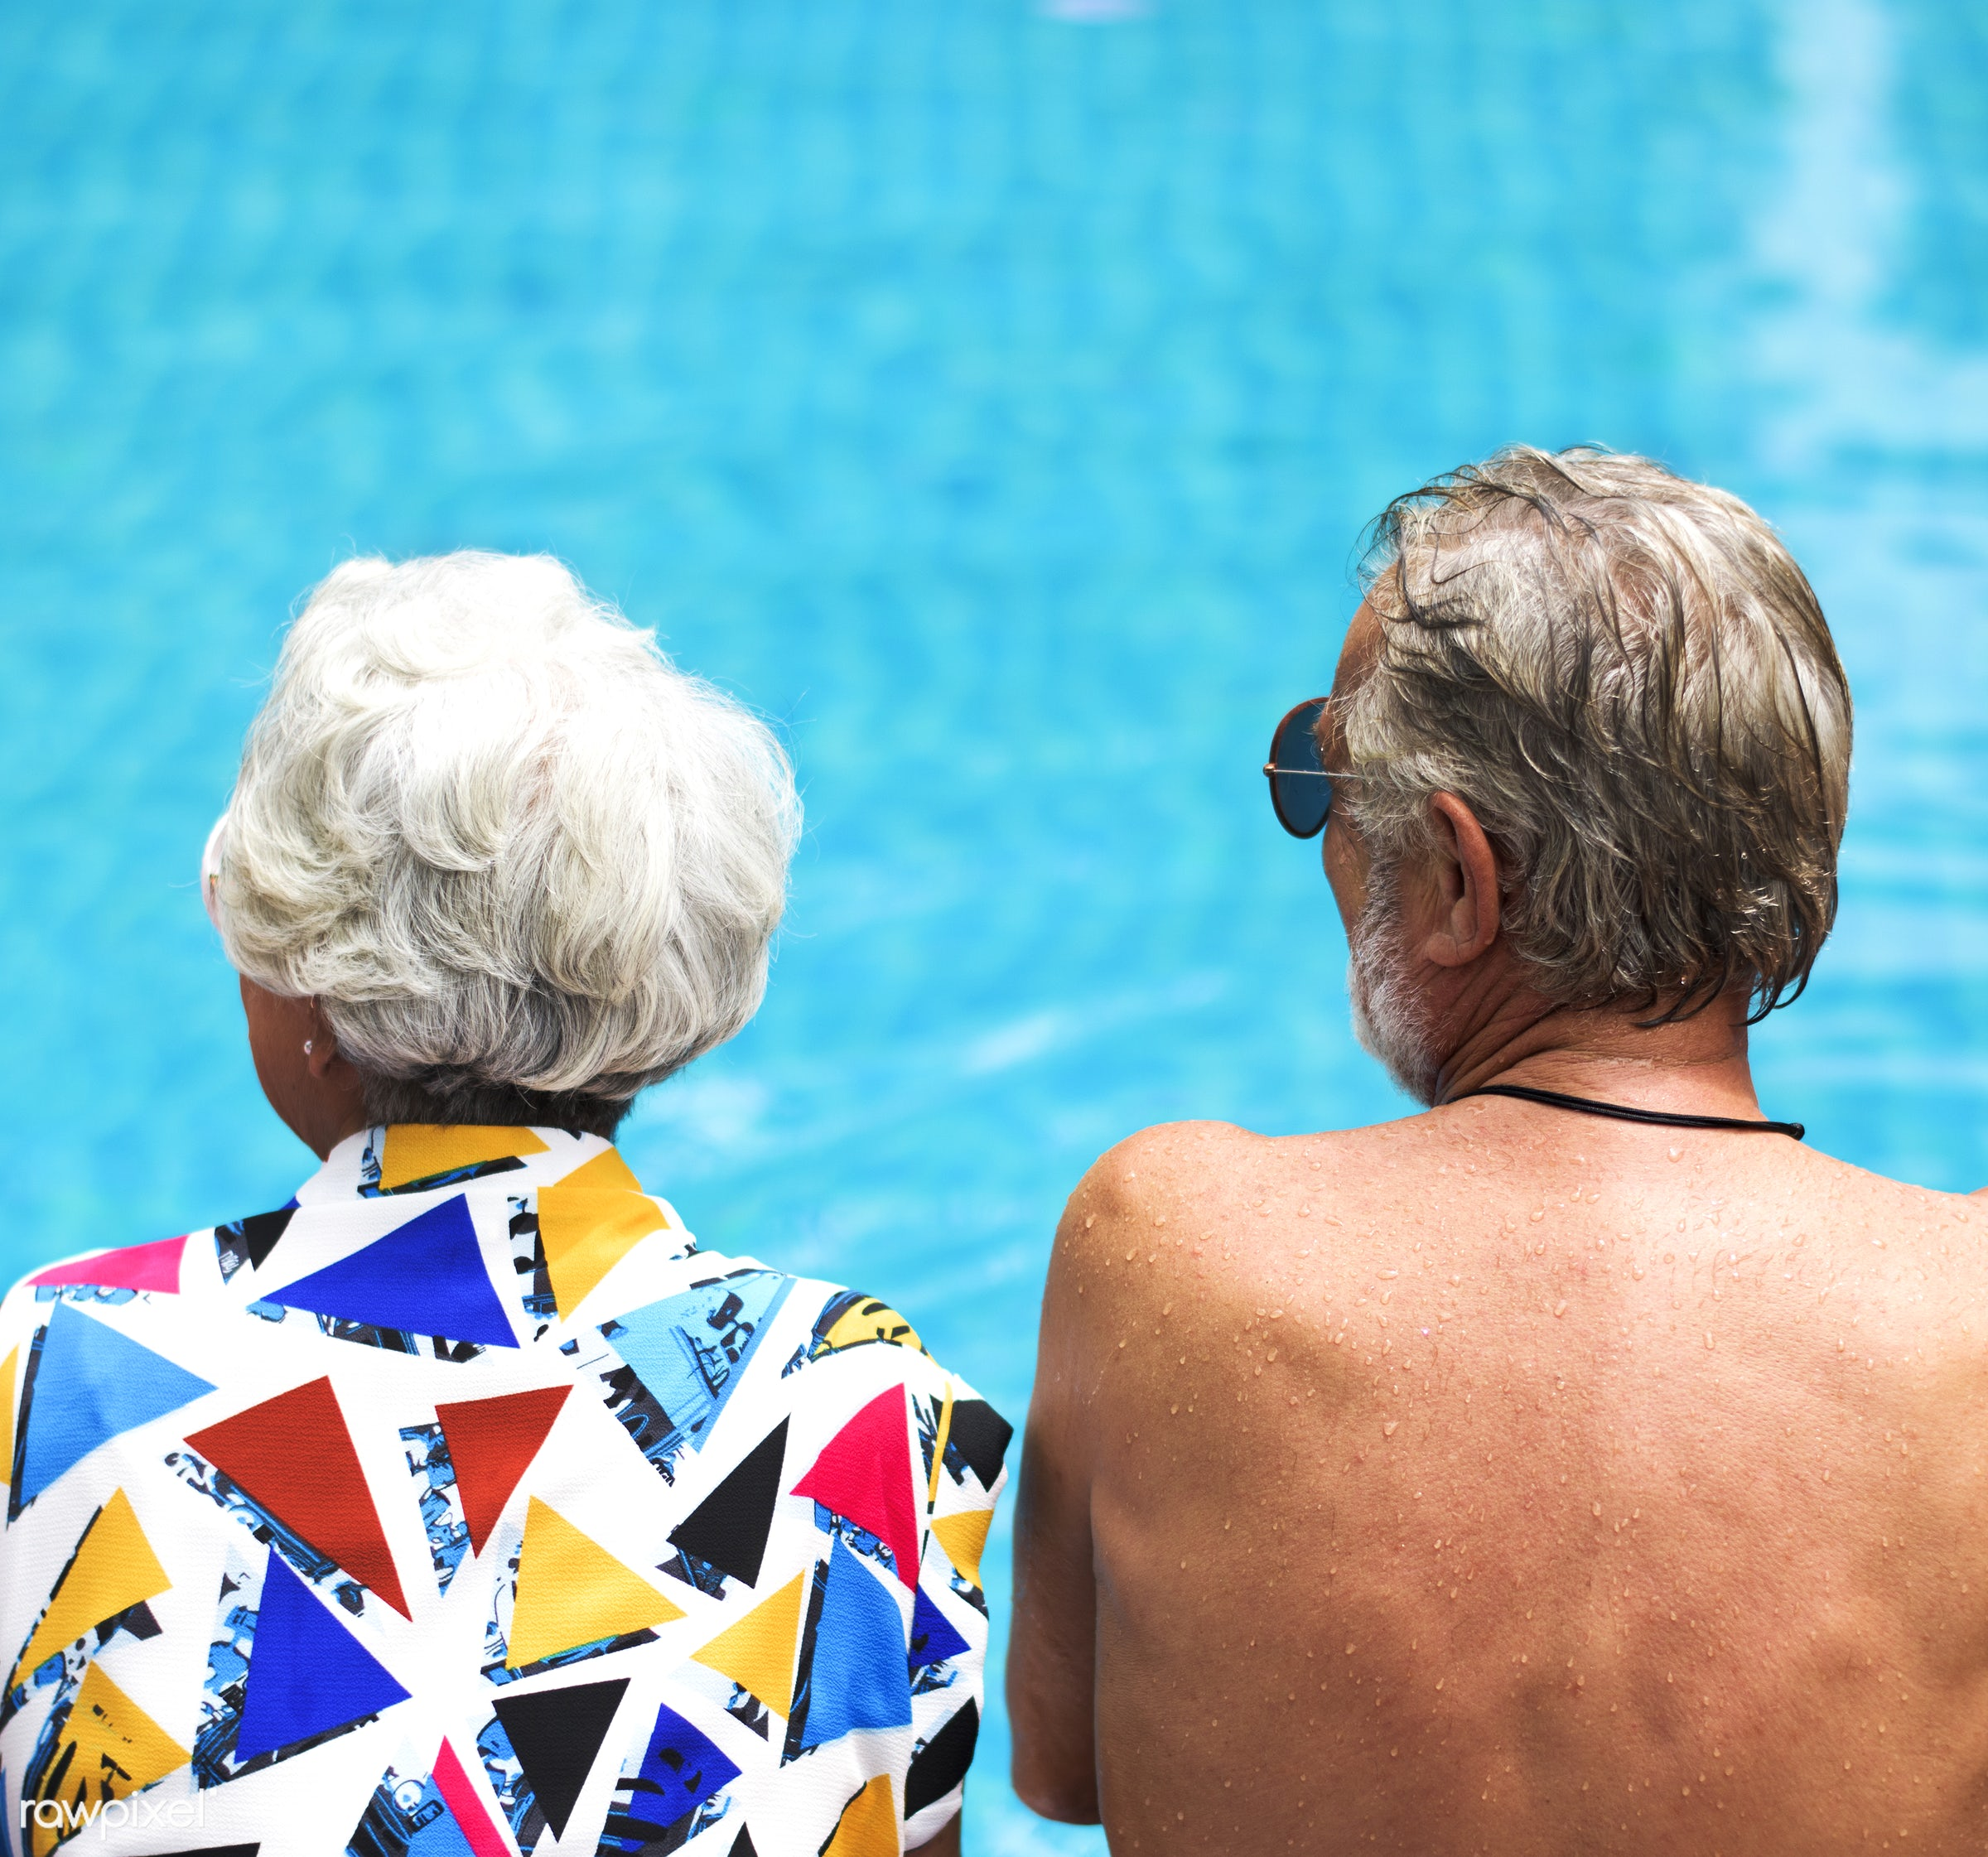 pool, couple, holiday, leisure, outdoor, poolside, recreation, recreational, refreshment, relax, relaxation, relaxing,...